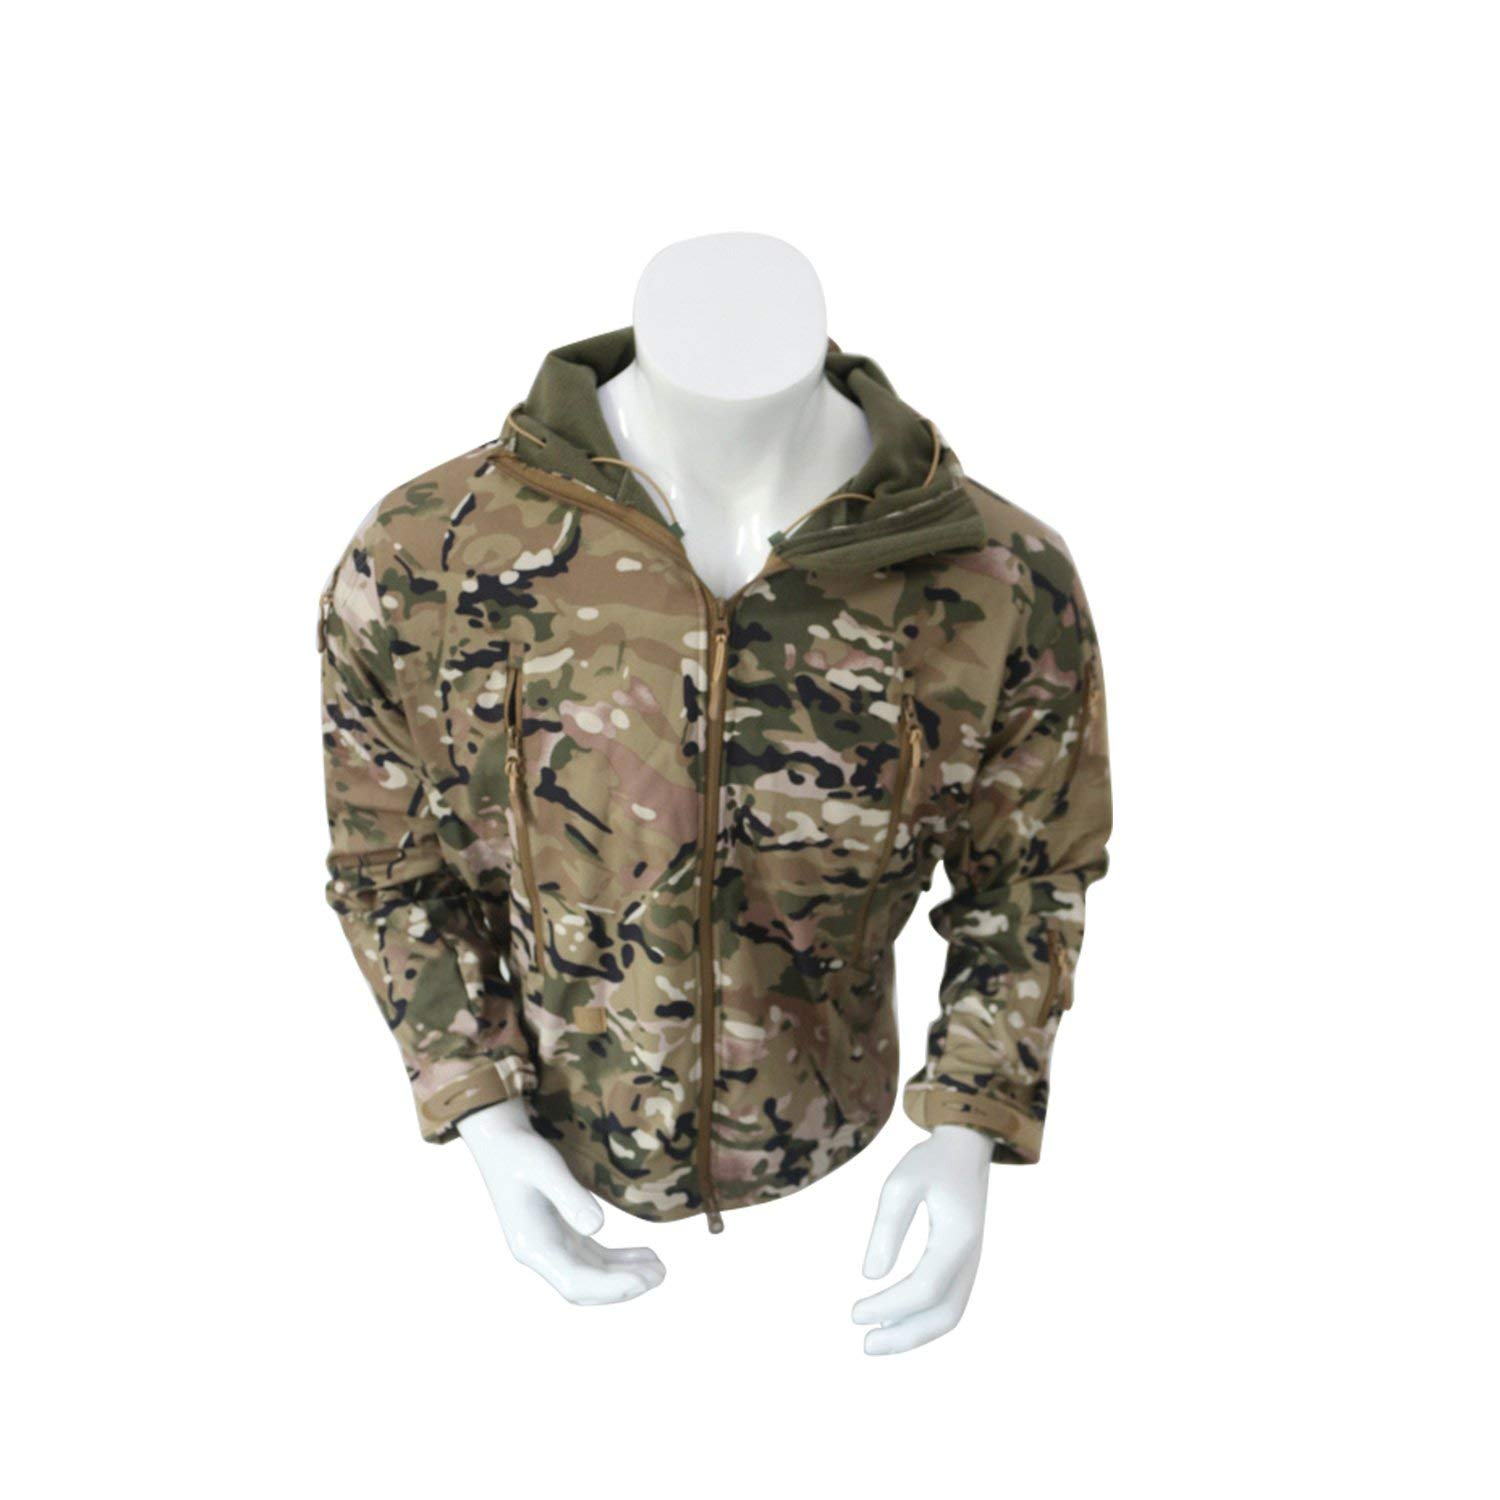 211857a8a6d Get Quotations · Men s Army Outdoor Military Special Ops Softshell Tactical  Hooded Jacket Sports Windproof Hunting Jacket Multicam